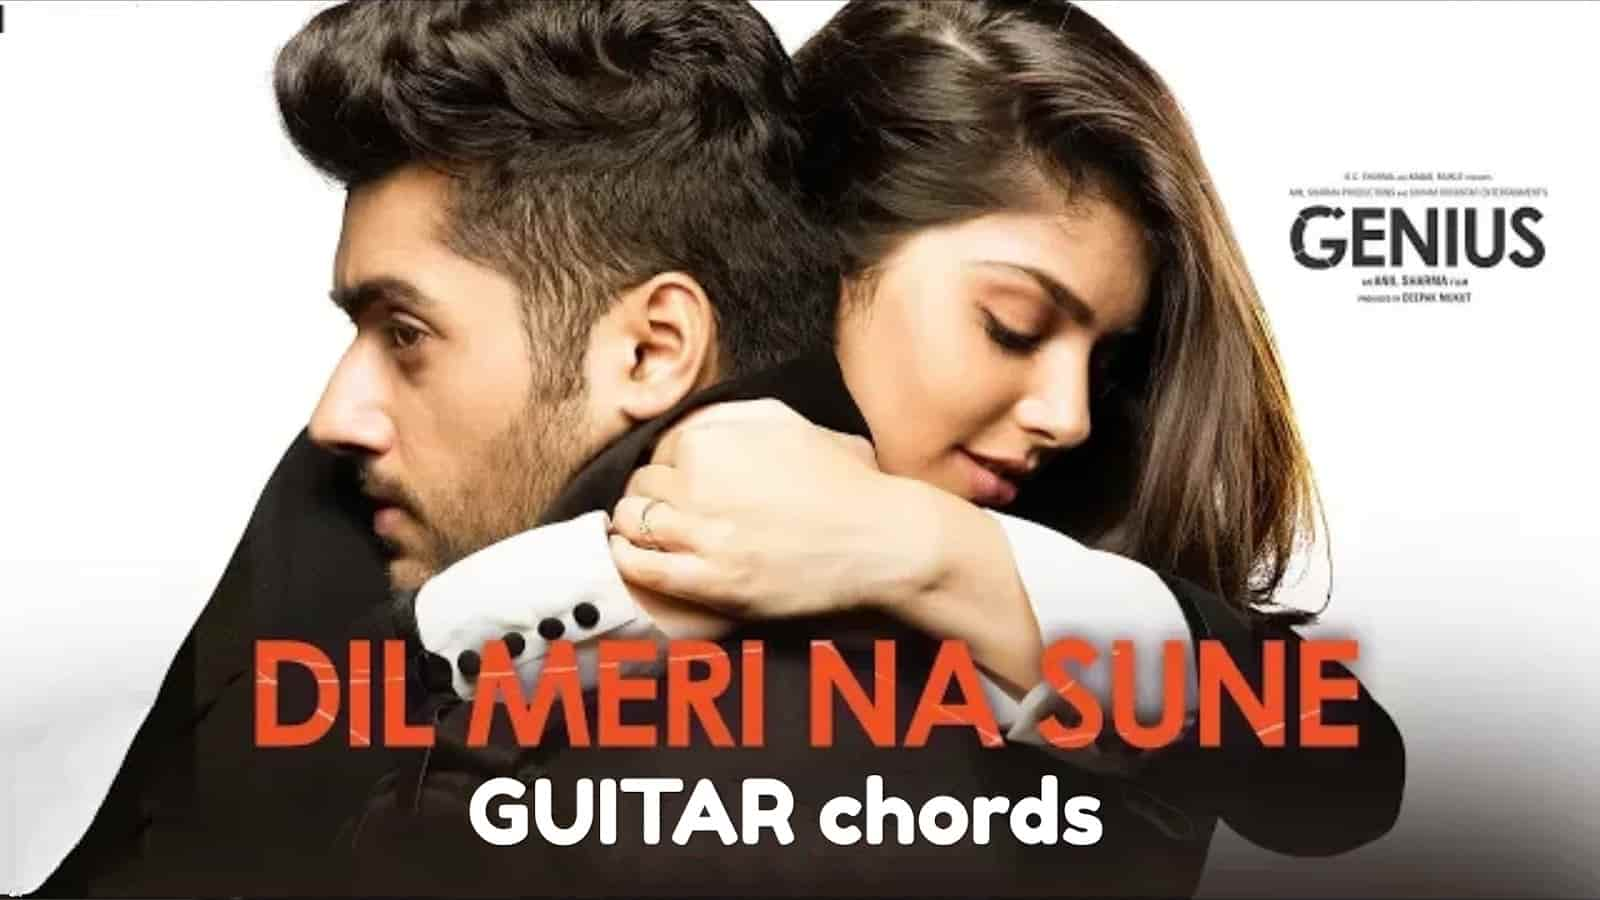 Dil Meri Na Sune Chords With Strumming Pattern Genius Tab And Chord